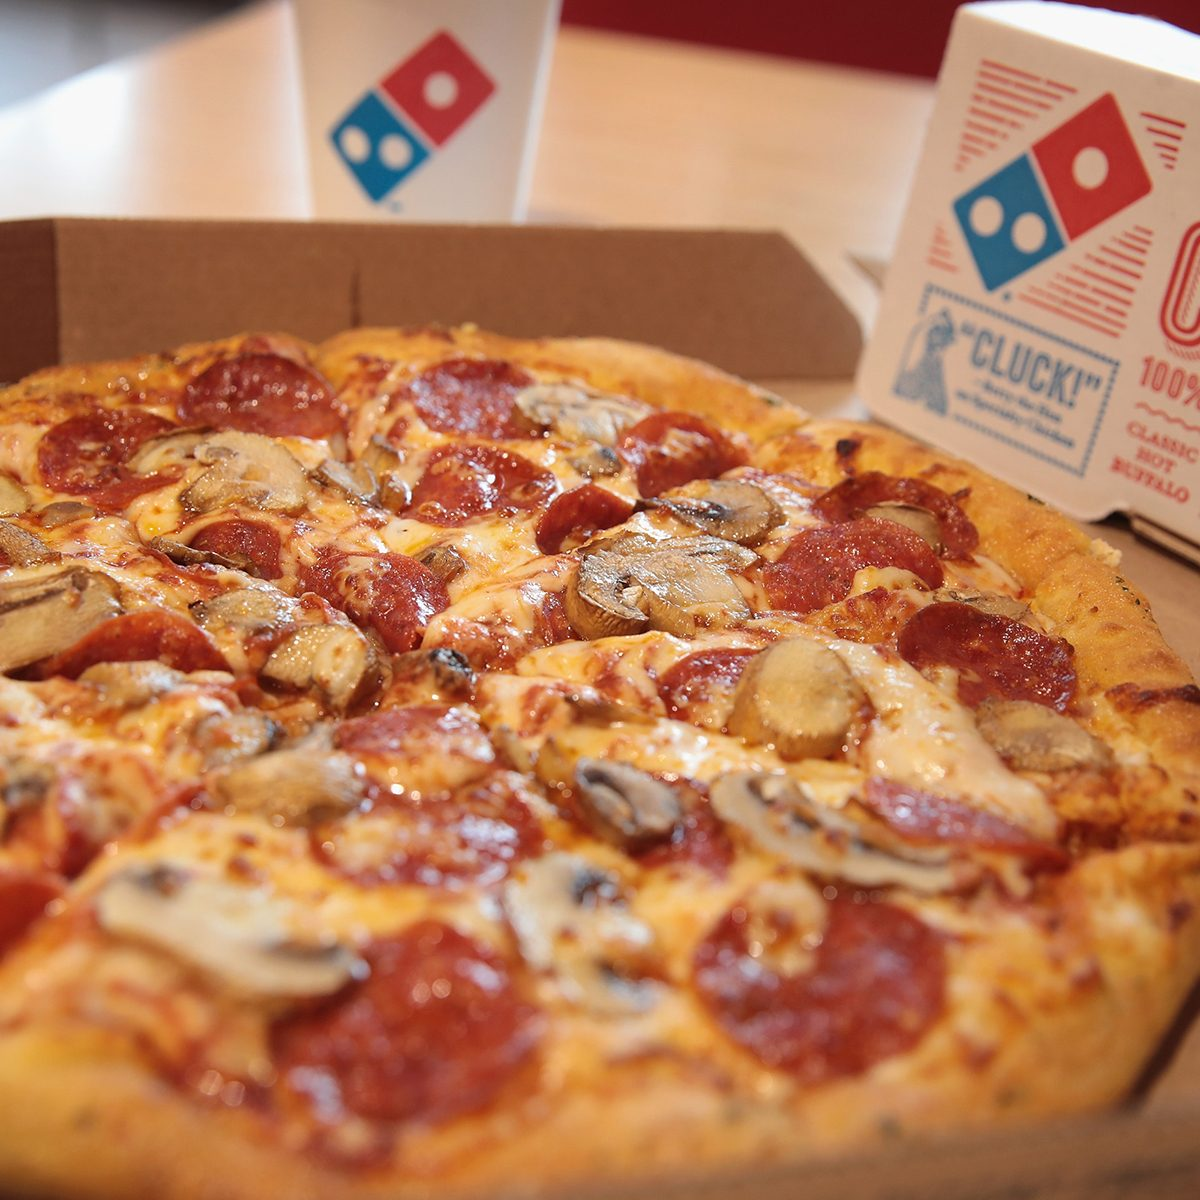 CHICAGO, IL - OCTOBER 12: Domino's menu items are shown on October 12, 2017 in Chicago, Illinois. Shares of the restaurant chain fell 4 percent today despite reporting an increase of more than 8 percent in domestic same-store sales. (Photo Illustration by Scott Olson/Getty Images)